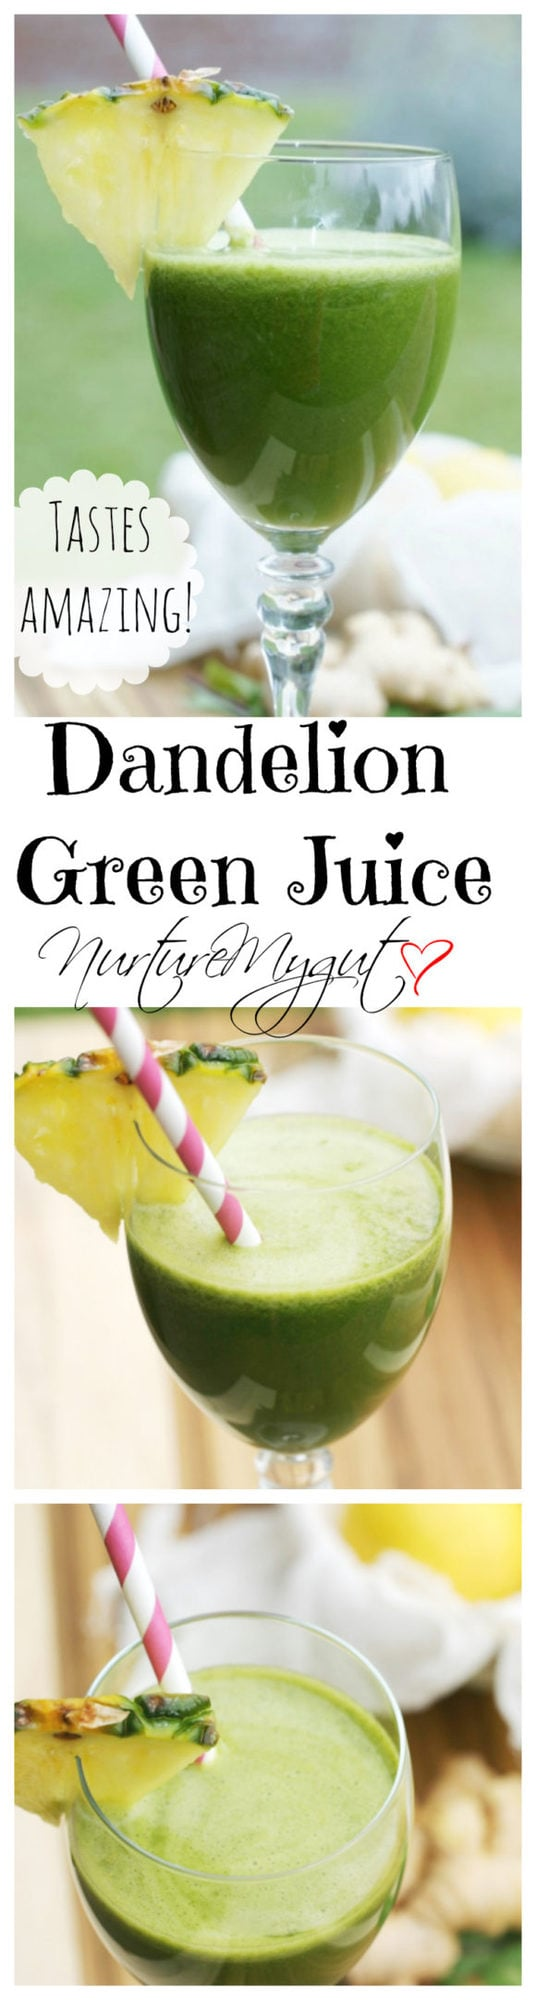 dandelion green juice